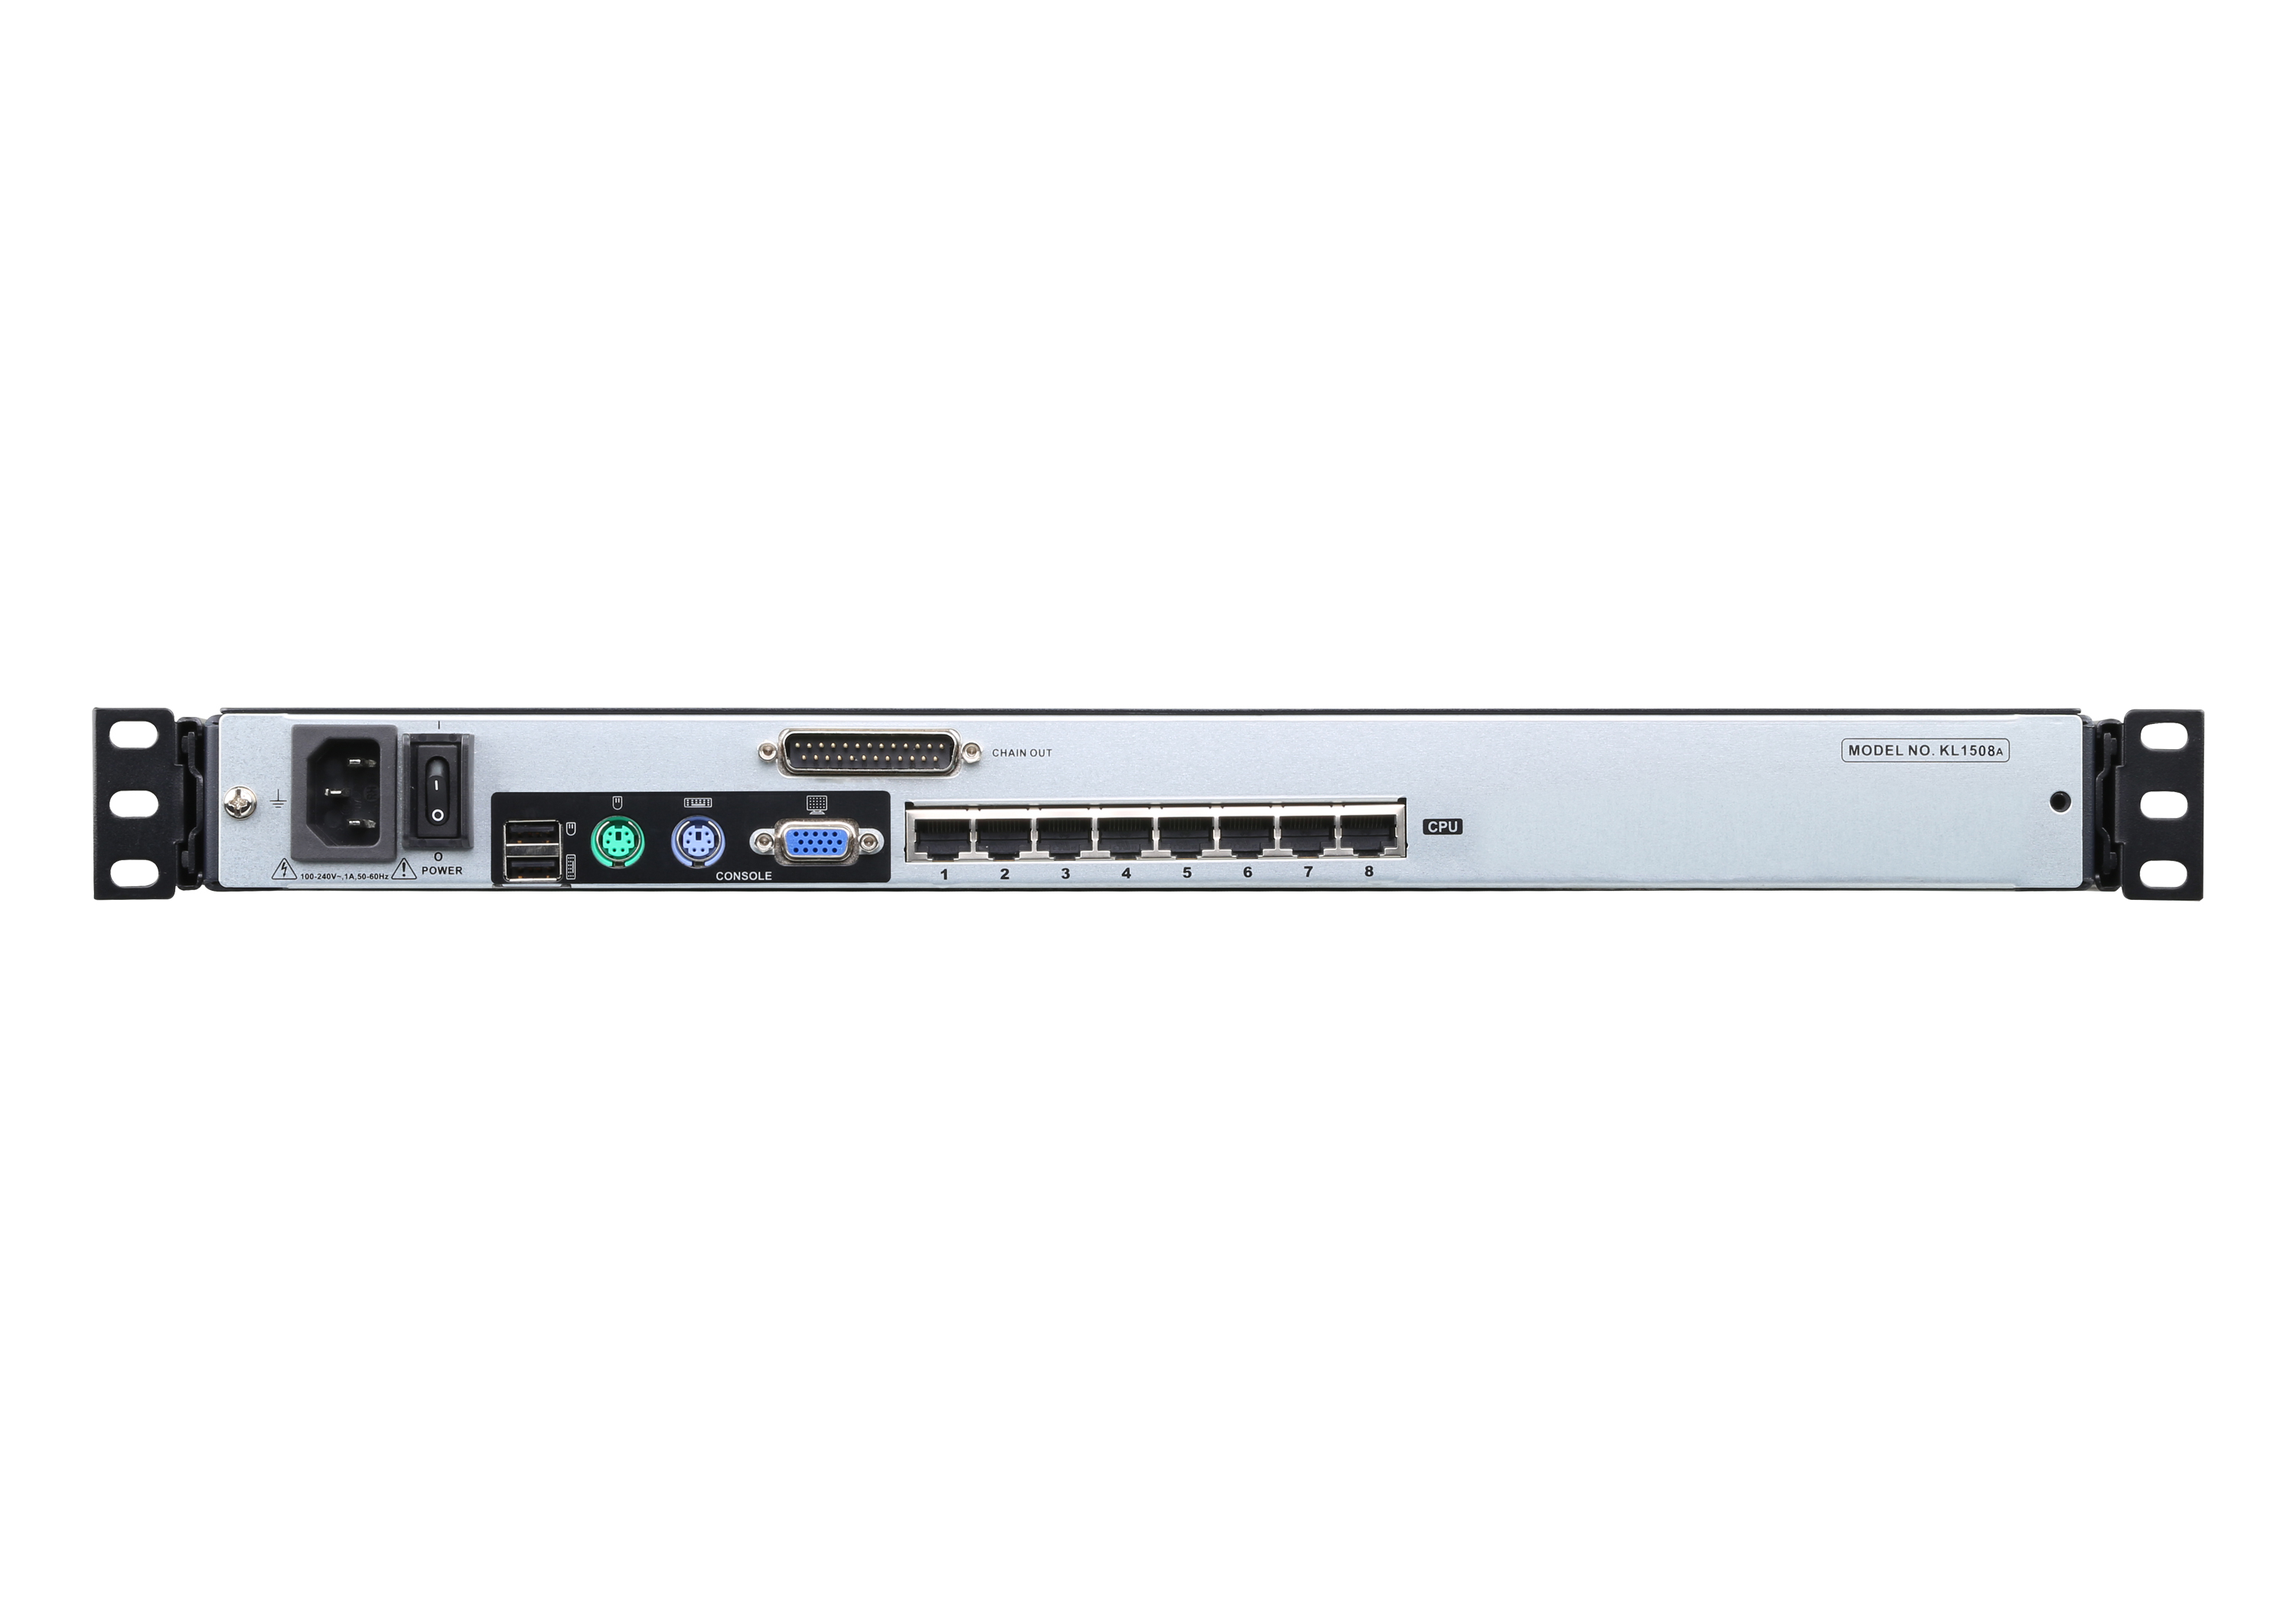 8-Port Cat 5 Dual Rail LCD KVM Switch with Daisy-Chain Port-2